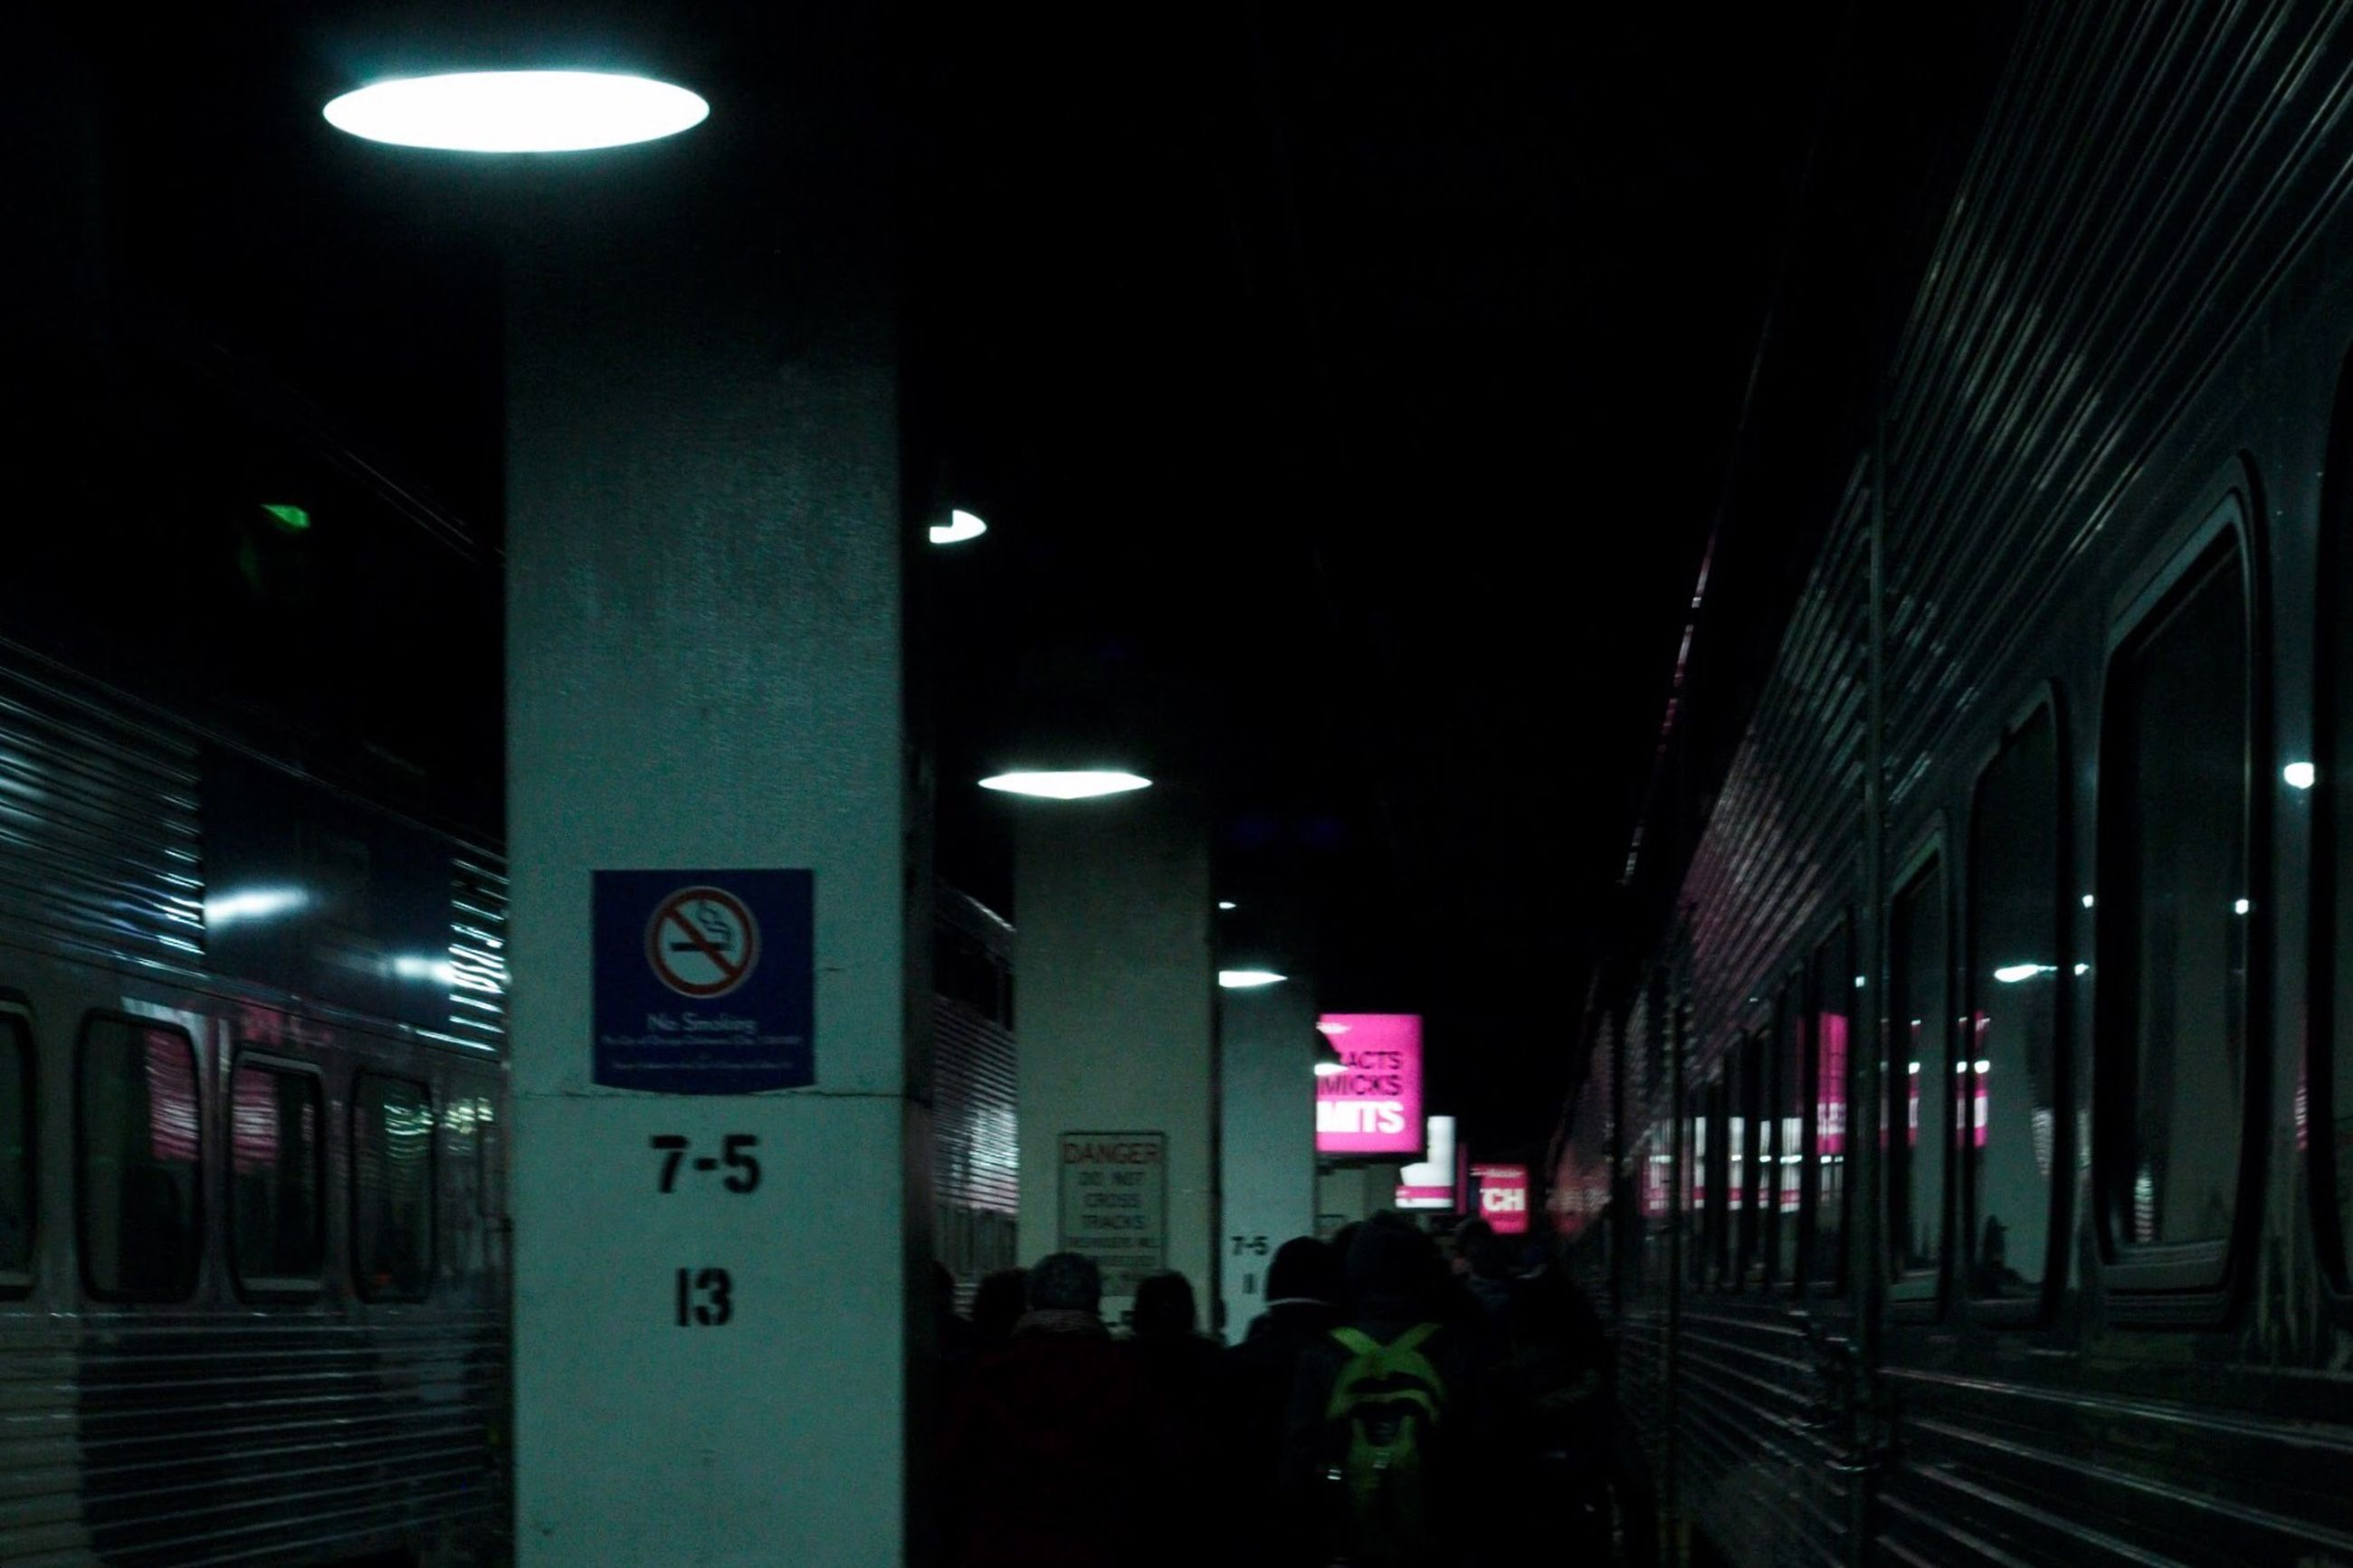 illuminated, night, architecture, built structure, lighting equipment, transportation, indoors, railroad station, text, subway station, railroad station platform, public transportation, incidental people, ceiling, city, western script, the way forward, building exterior, non-western script, city life